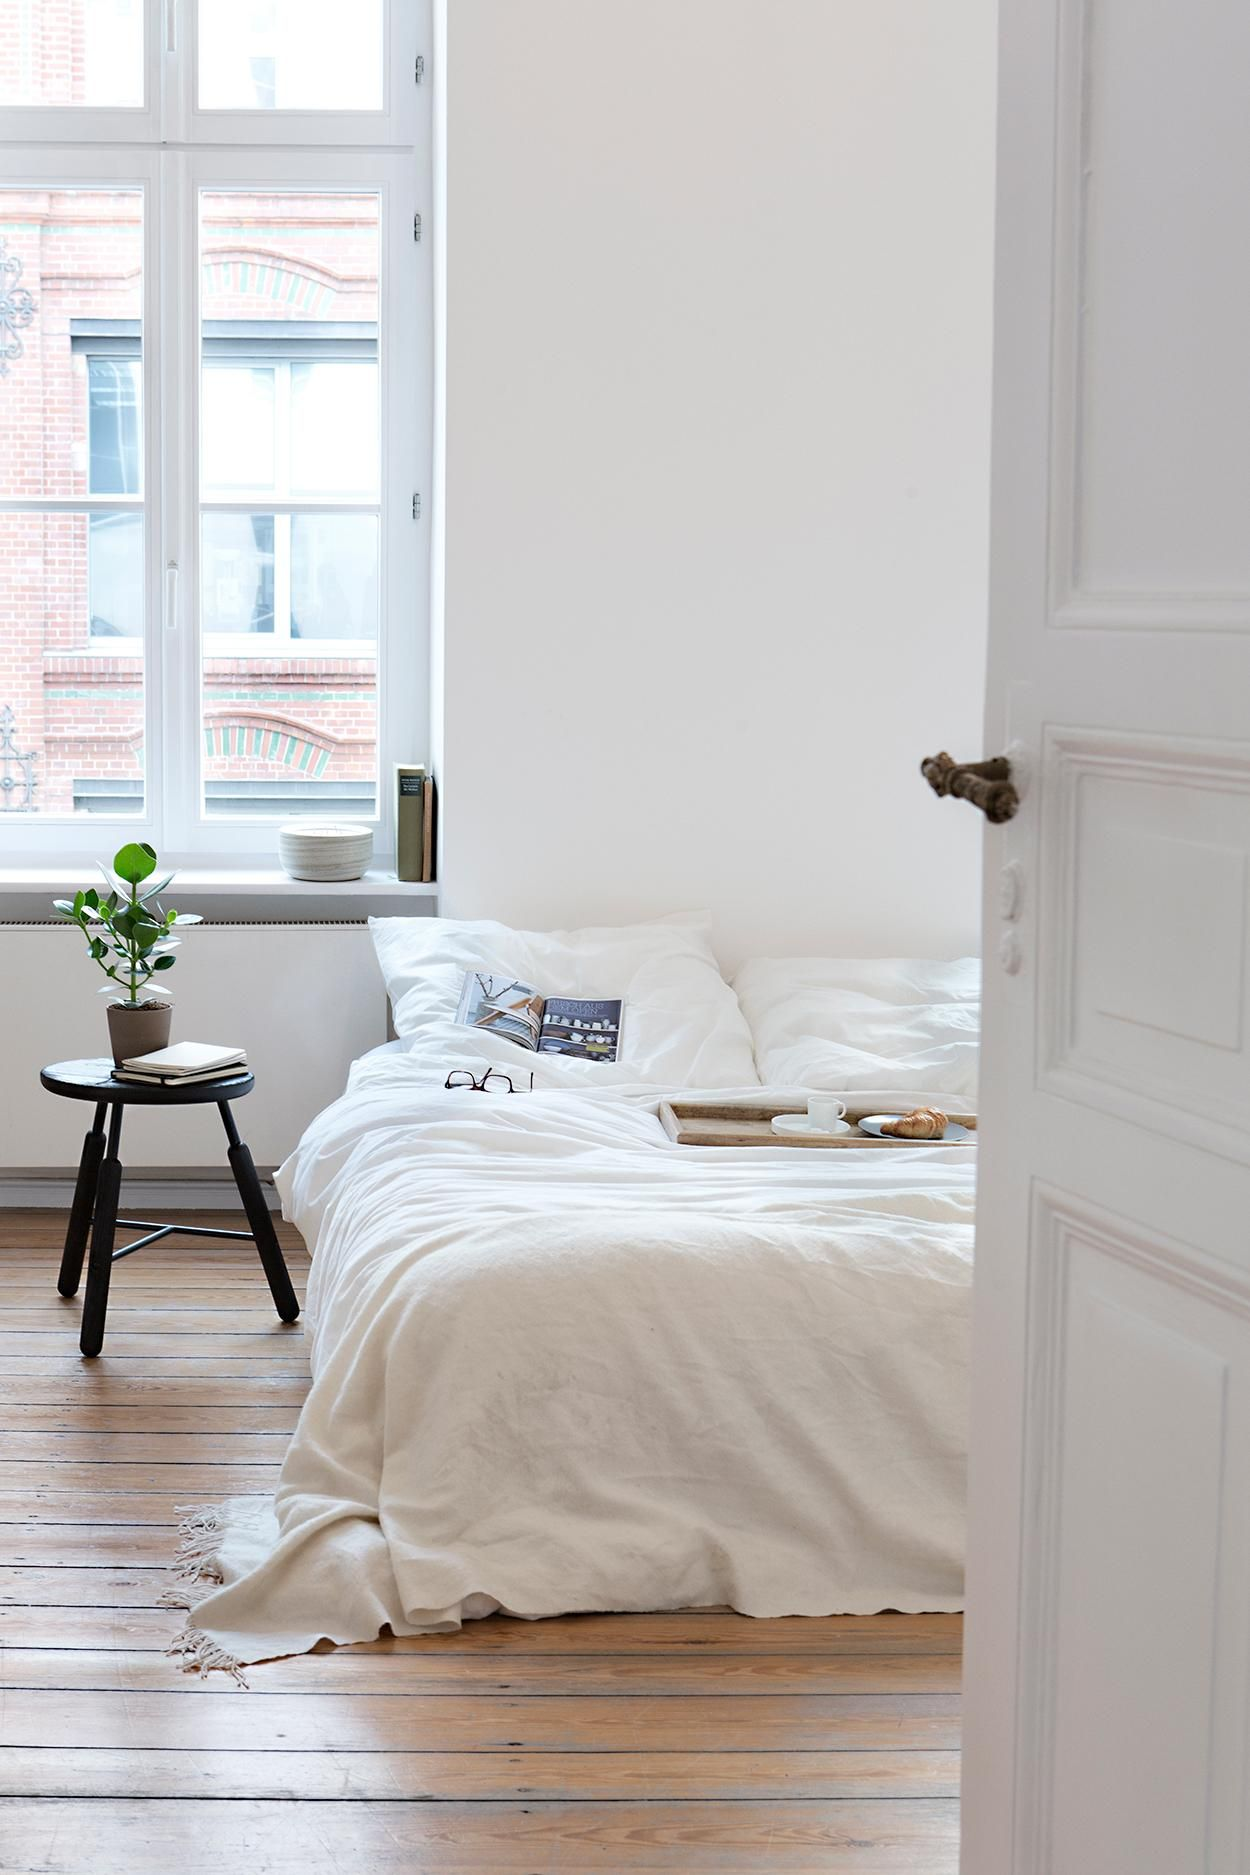 cozy peek apartment loft room floors with inspired beams swansea neutral wooden candles windows armchair living a table dark flooring gray scandinavian floor sitting style inside white black minimal in sofa home nonagon wood lamp